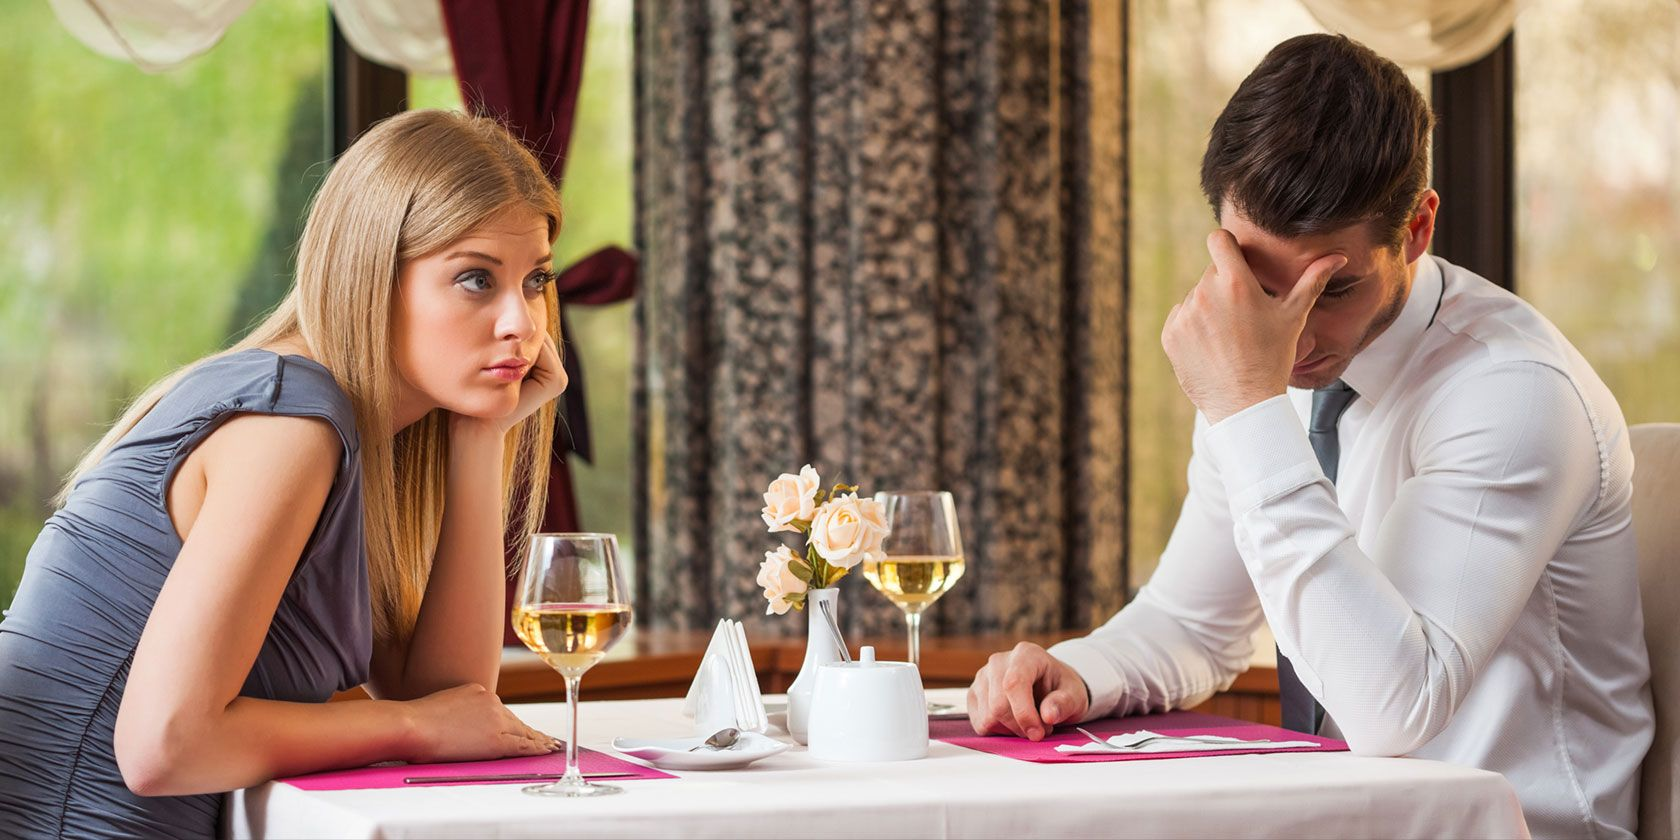 6 Online Dating Mistakes You Should Never Make